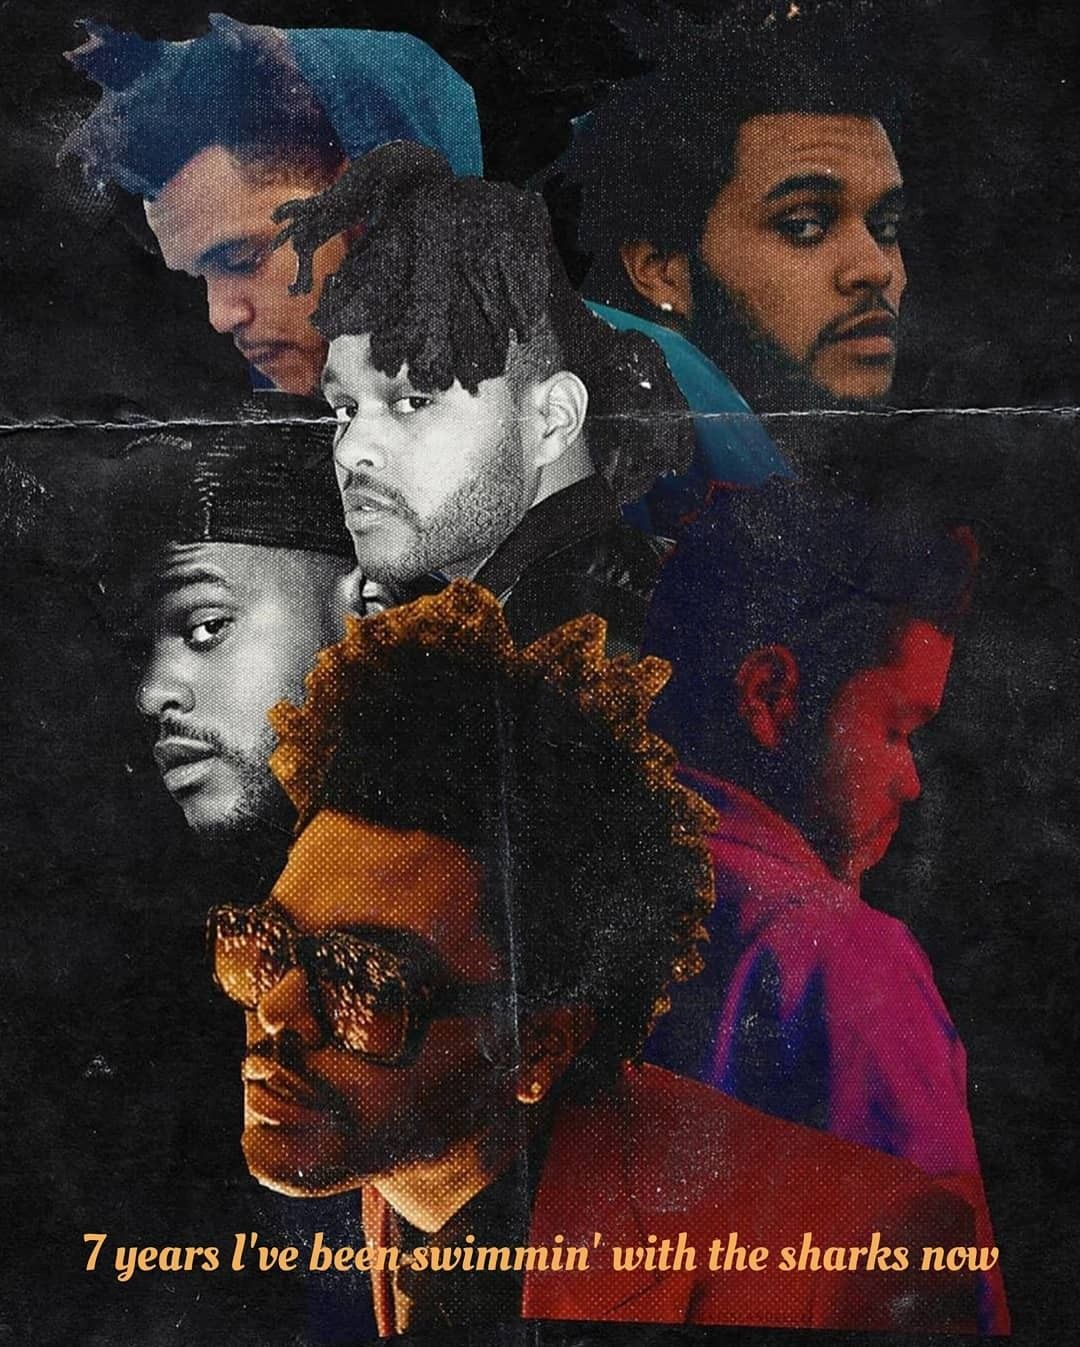 The Weeknd The Weeknd Poster The Weeknd Albums The Weeknd Background